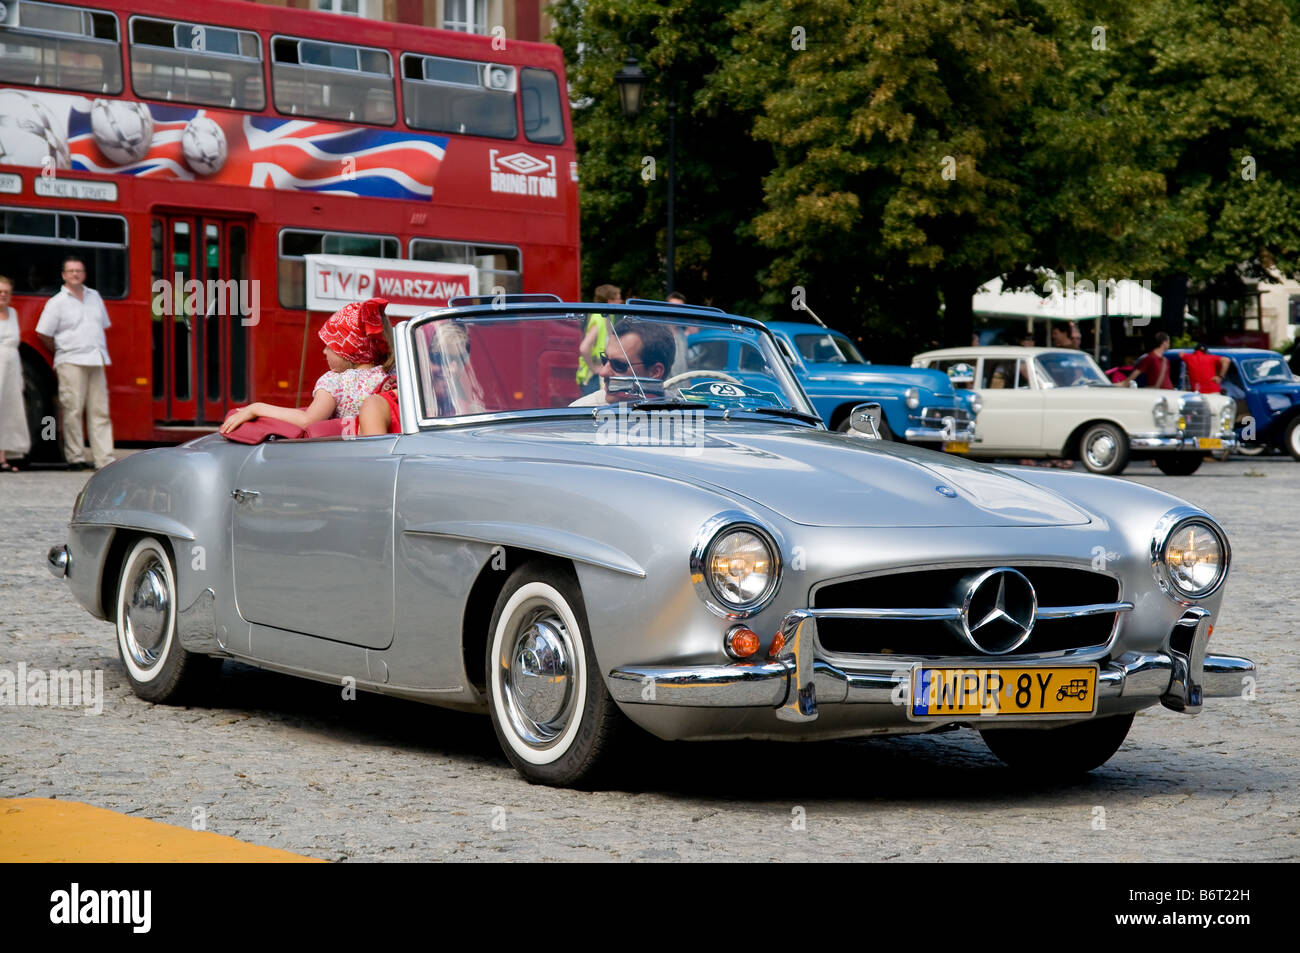 mercedes 190 sl stock photos mercedes 190 sl stock images alamy. Black Bedroom Furniture Sets. Home Design Ideas